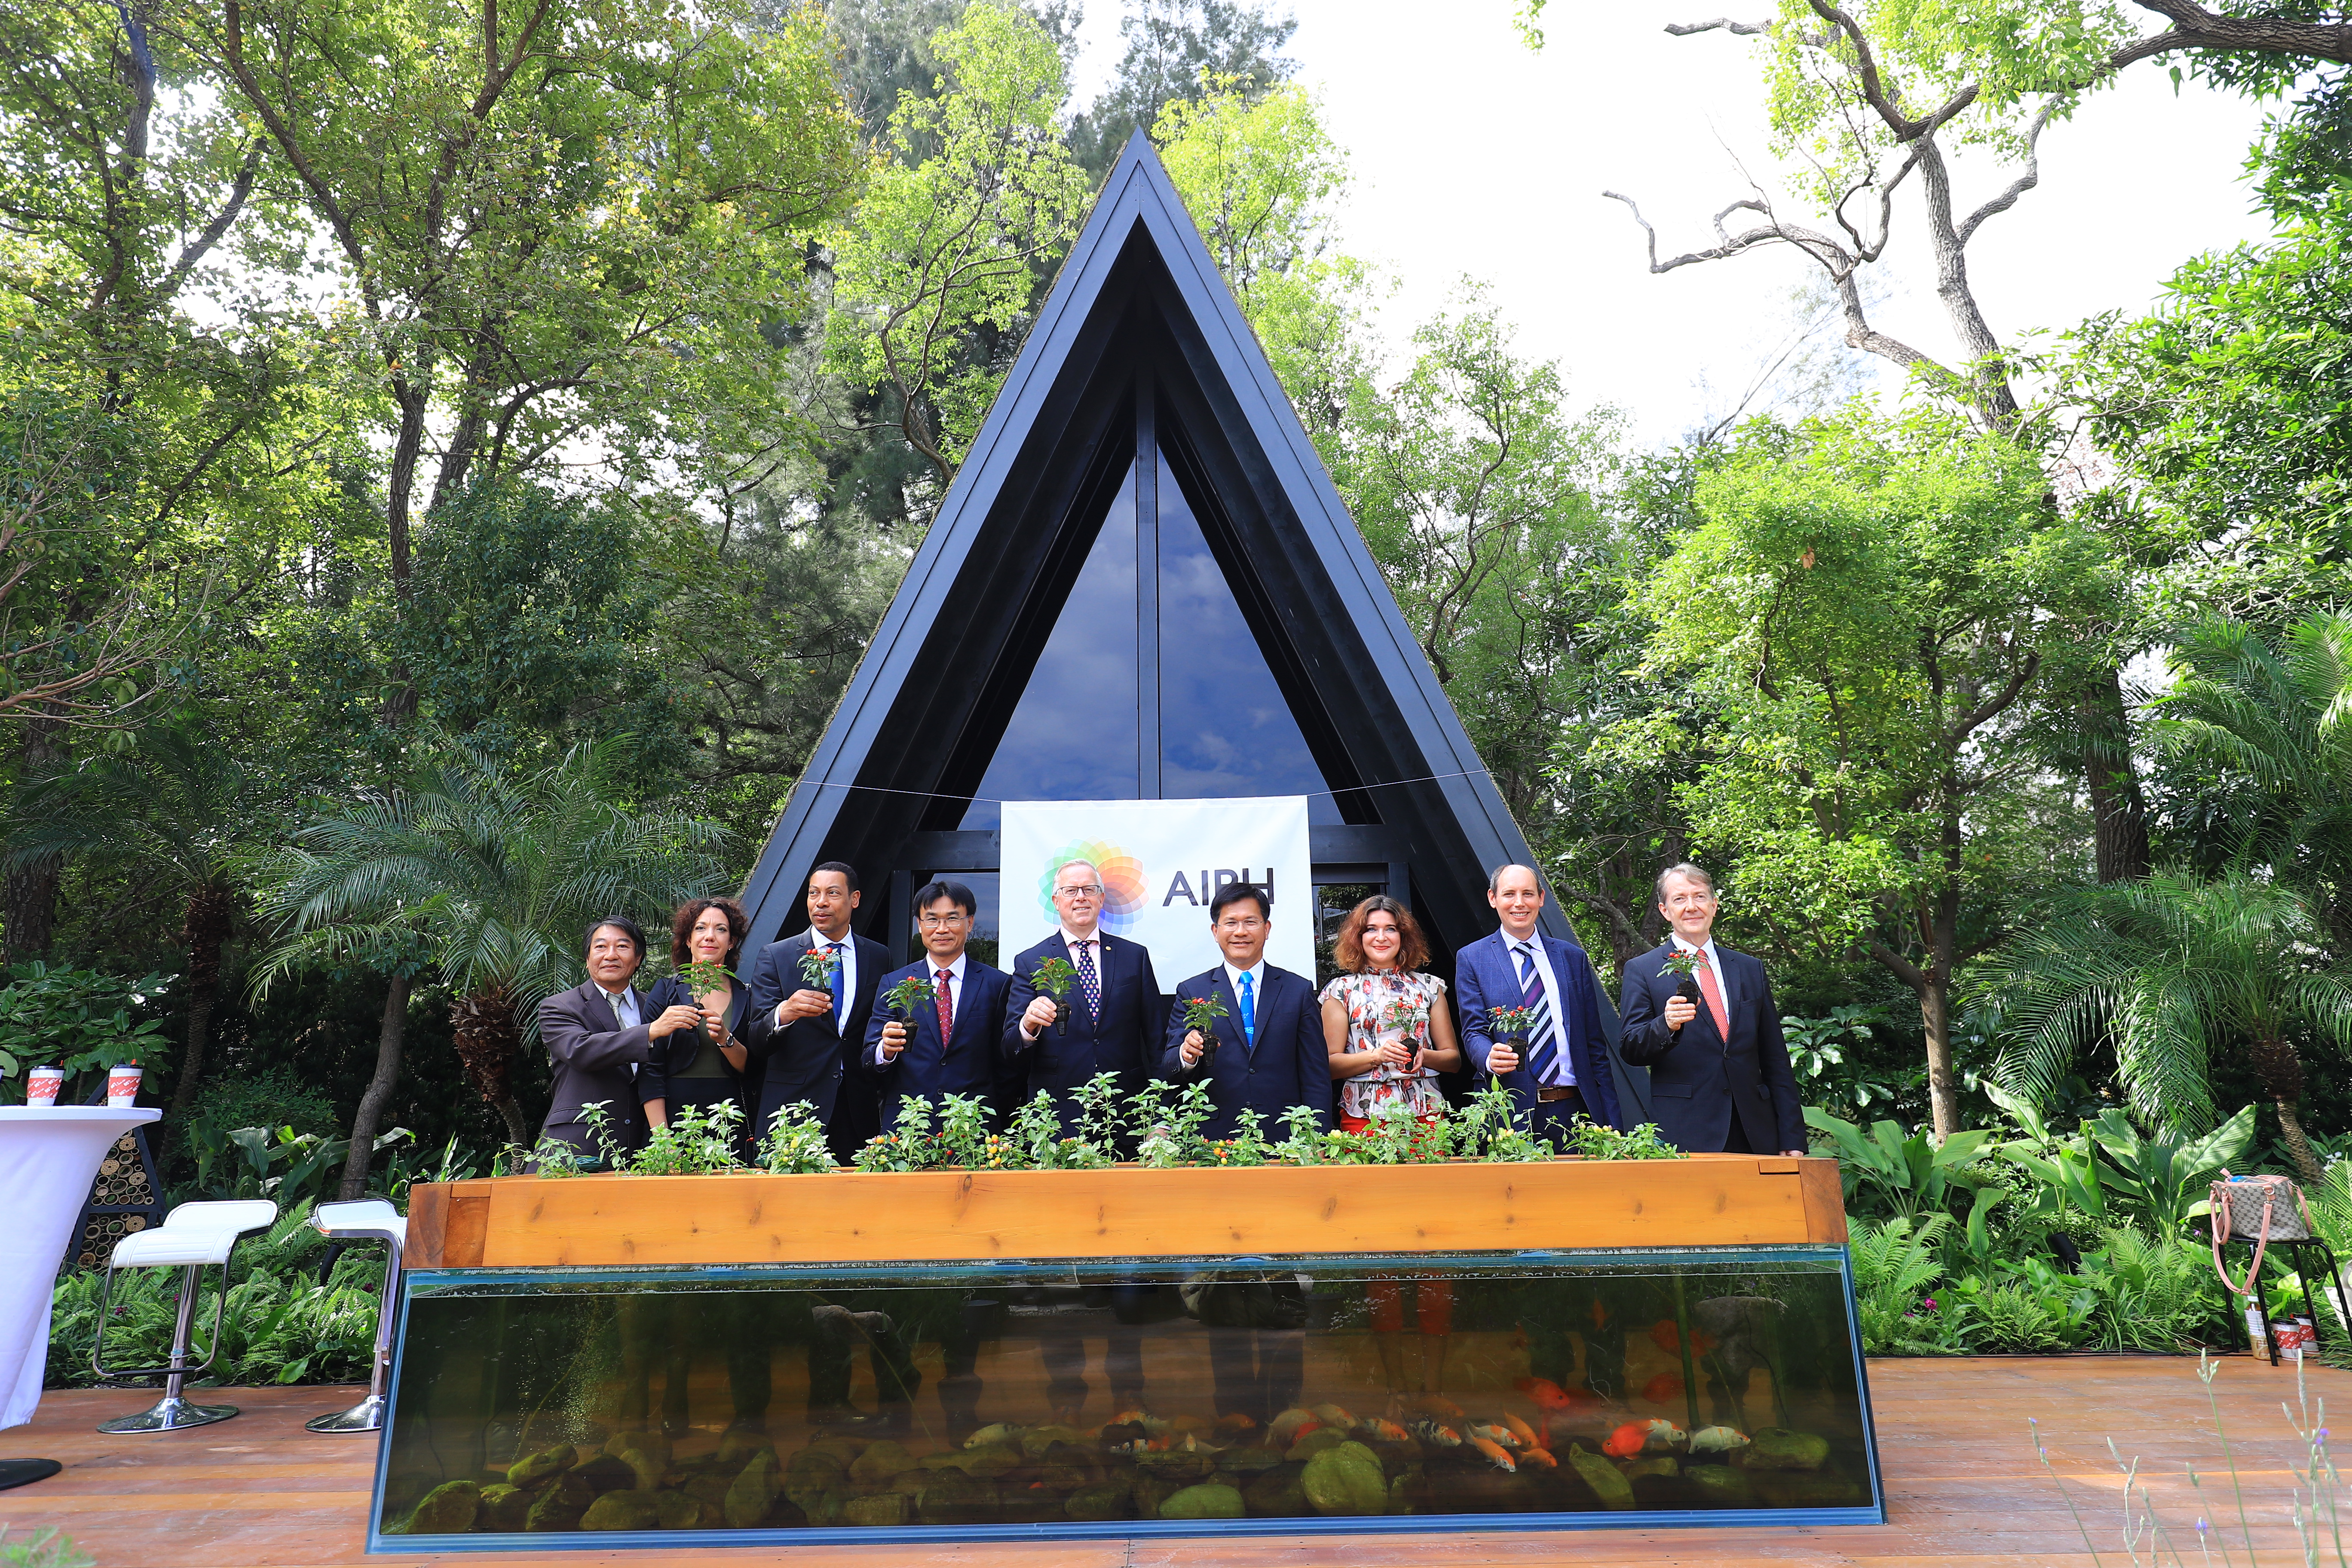 Aquaponics, Insect Hotel & Green Building, Taichung Flora Expo Exhibits AIPH Int'l Garden Model